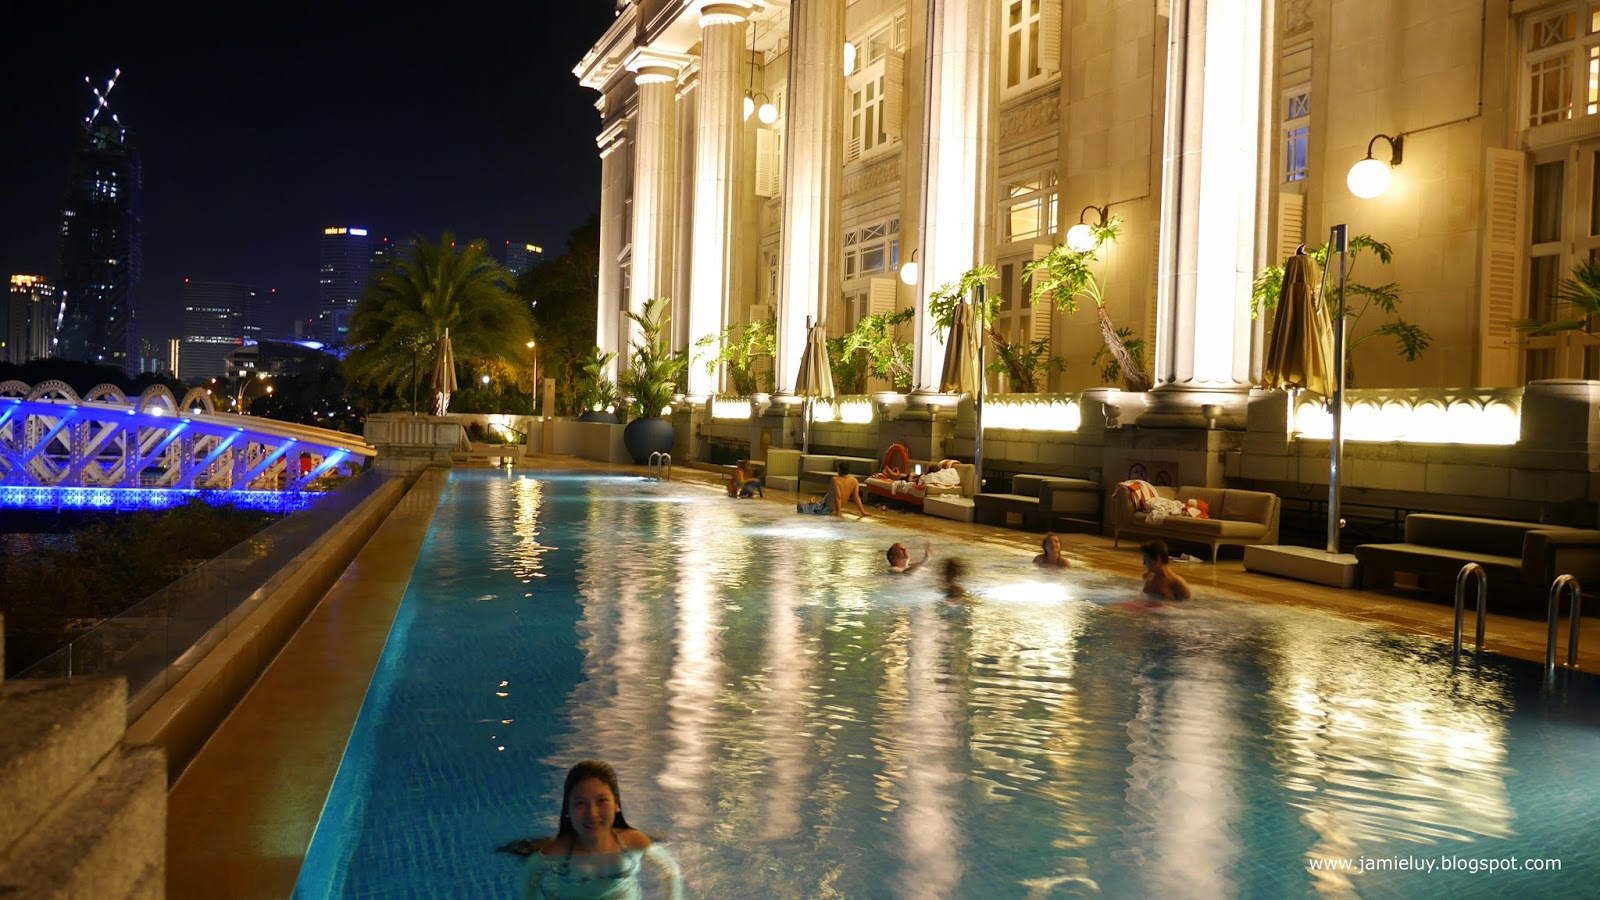 Swimming Pool at Night, Fullerton Hotel, Singapore